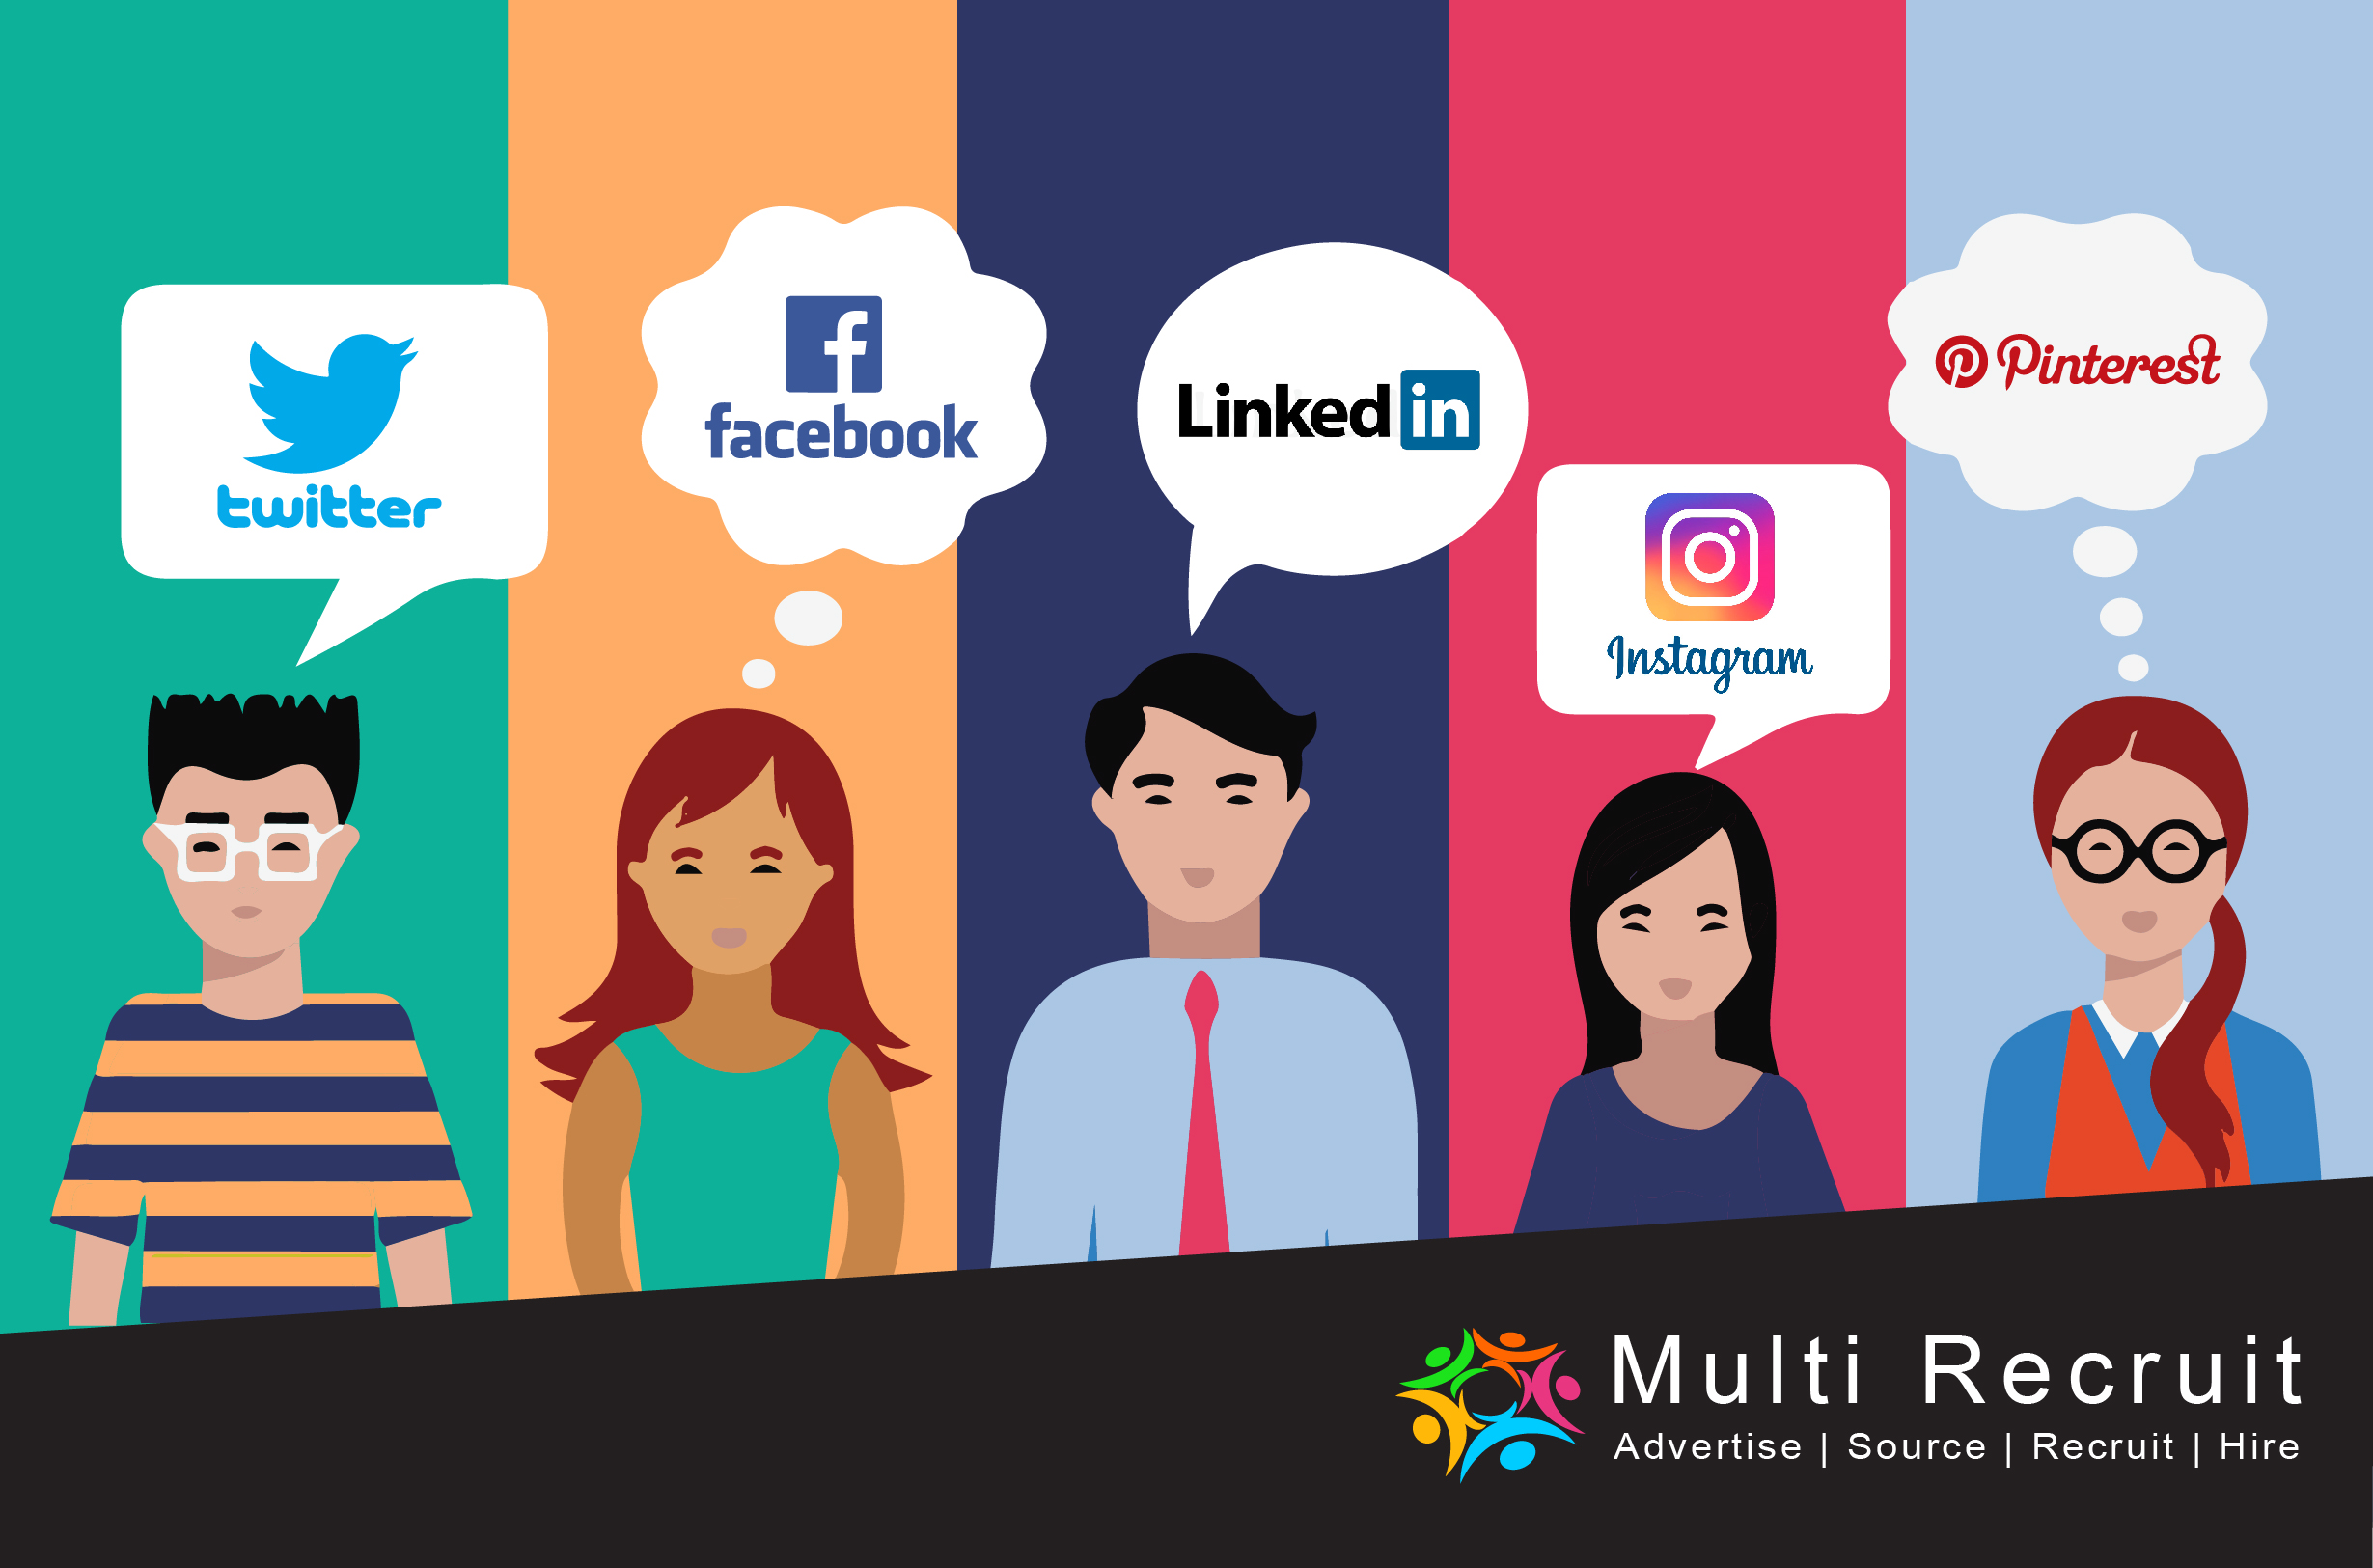 How to find Talent Using Social Media as a Recruiting Tool